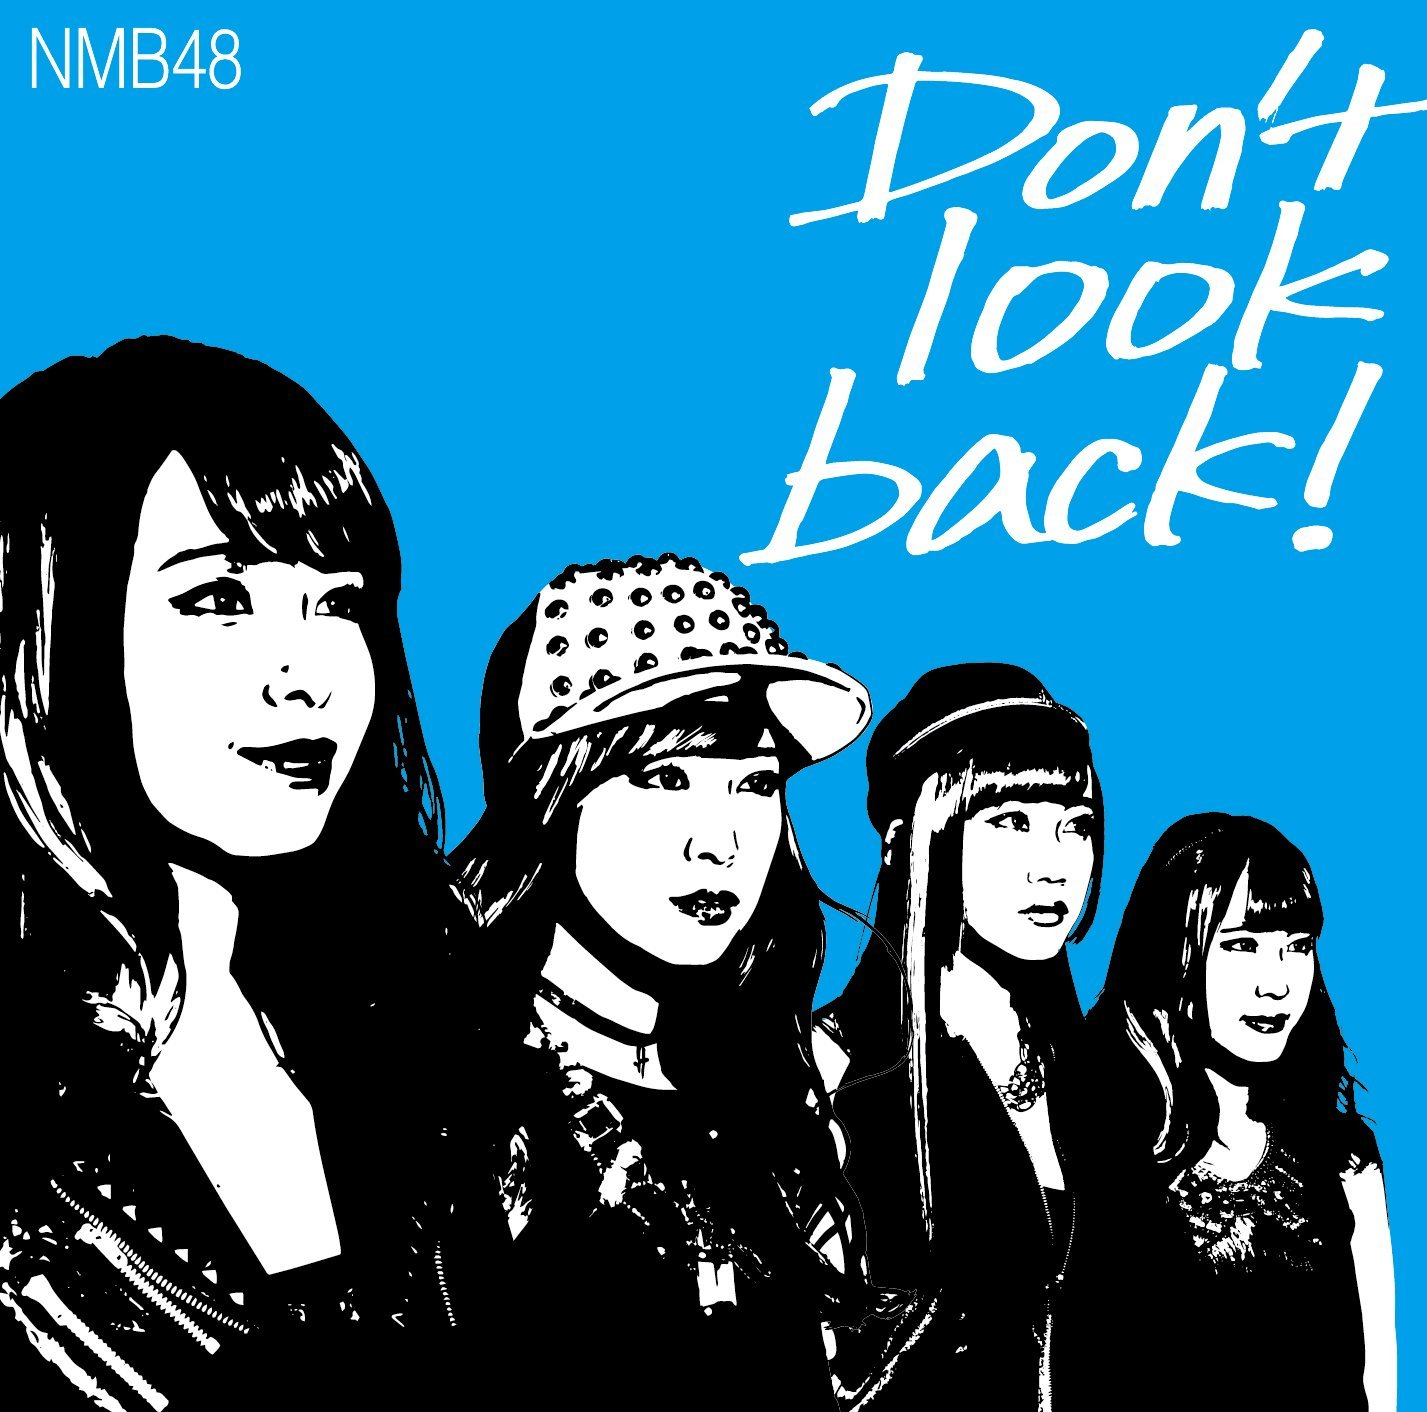 Don't look back! ジャケット  (2)